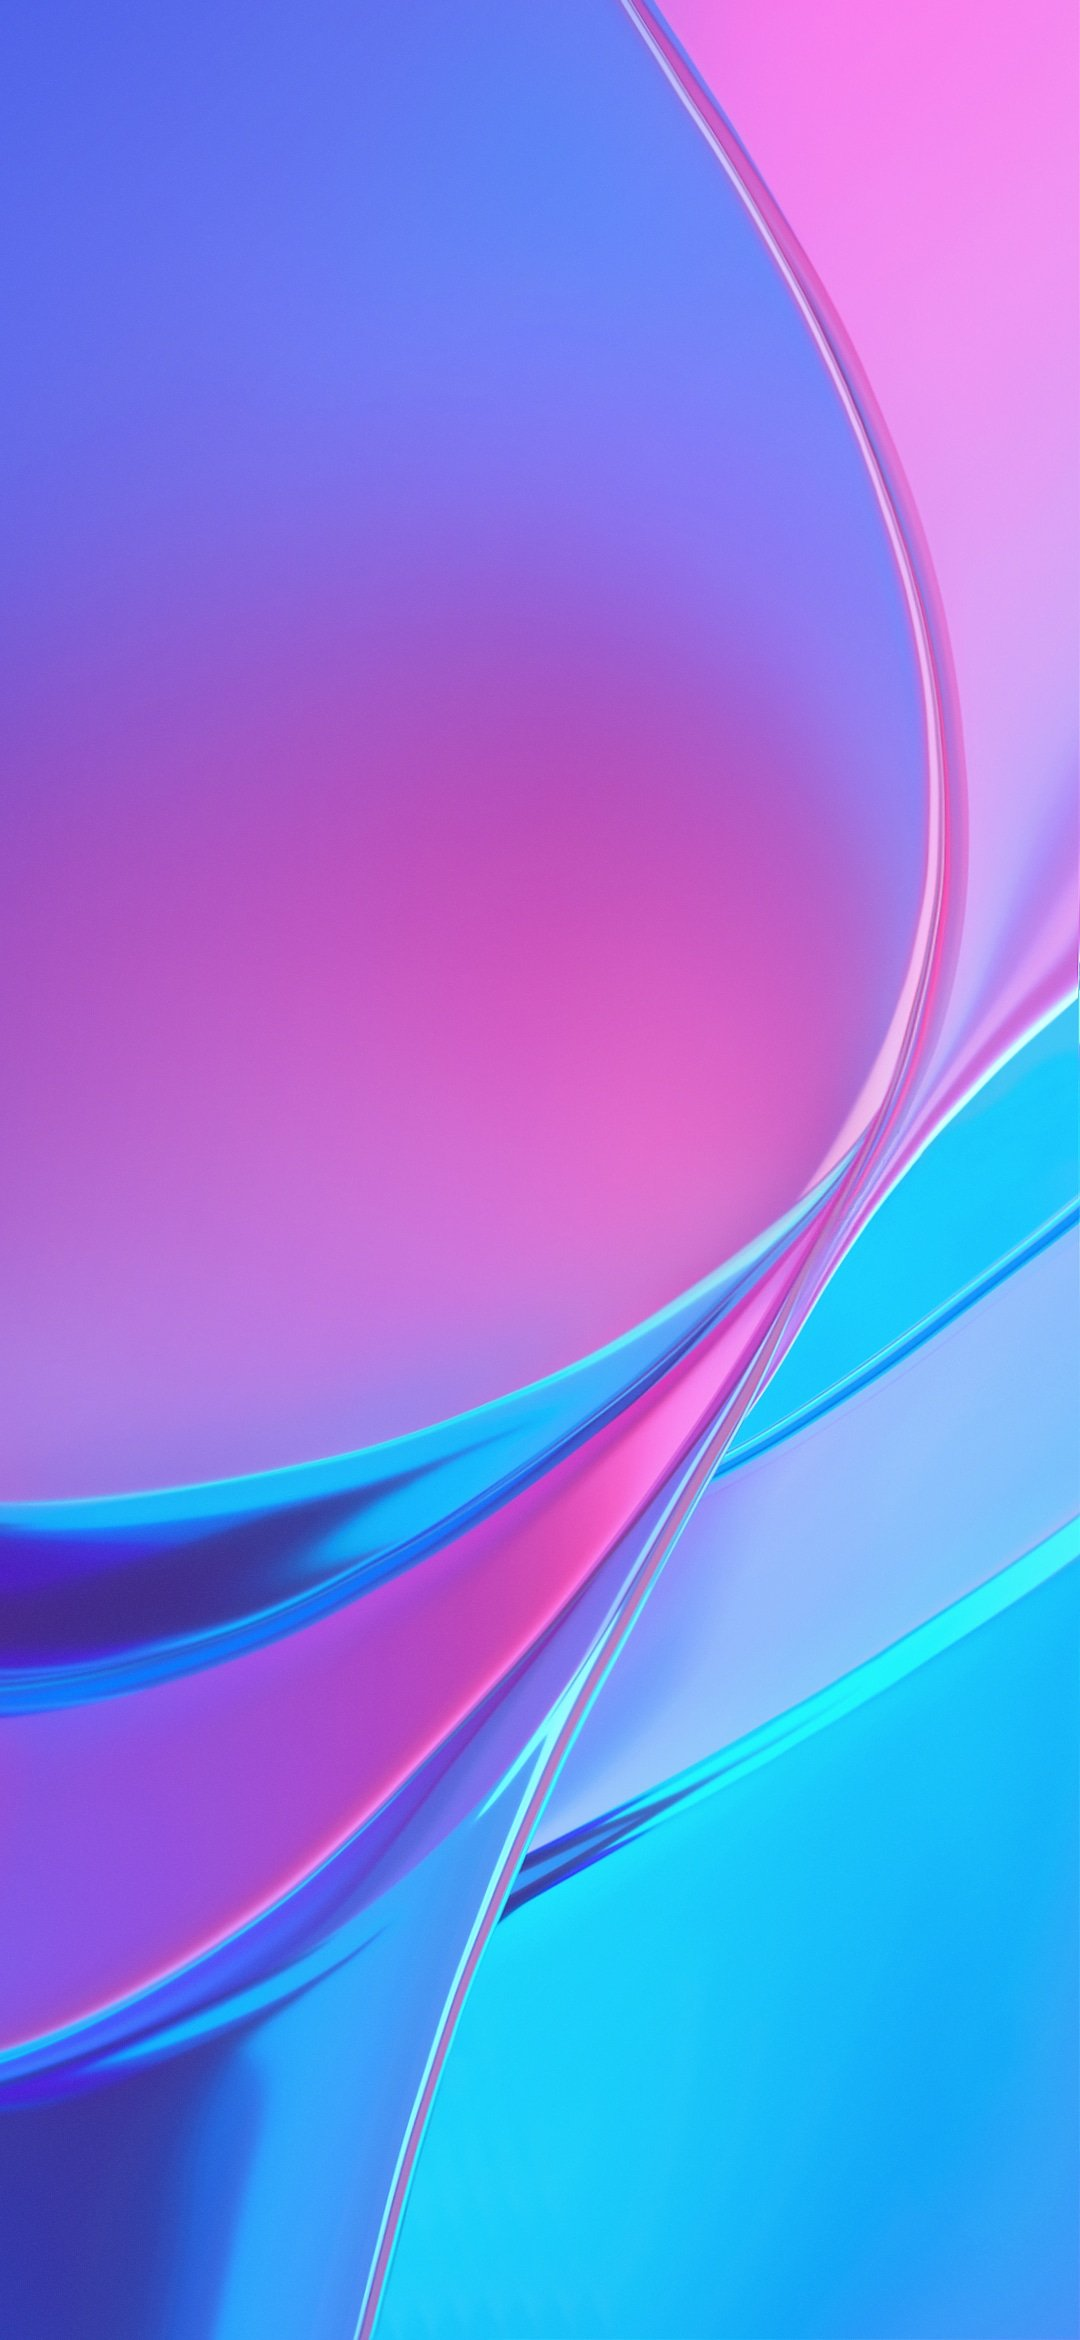 Download Xiaomi Mi 9 Wallpapers (29 Full HD+ Walls)  DroidViews